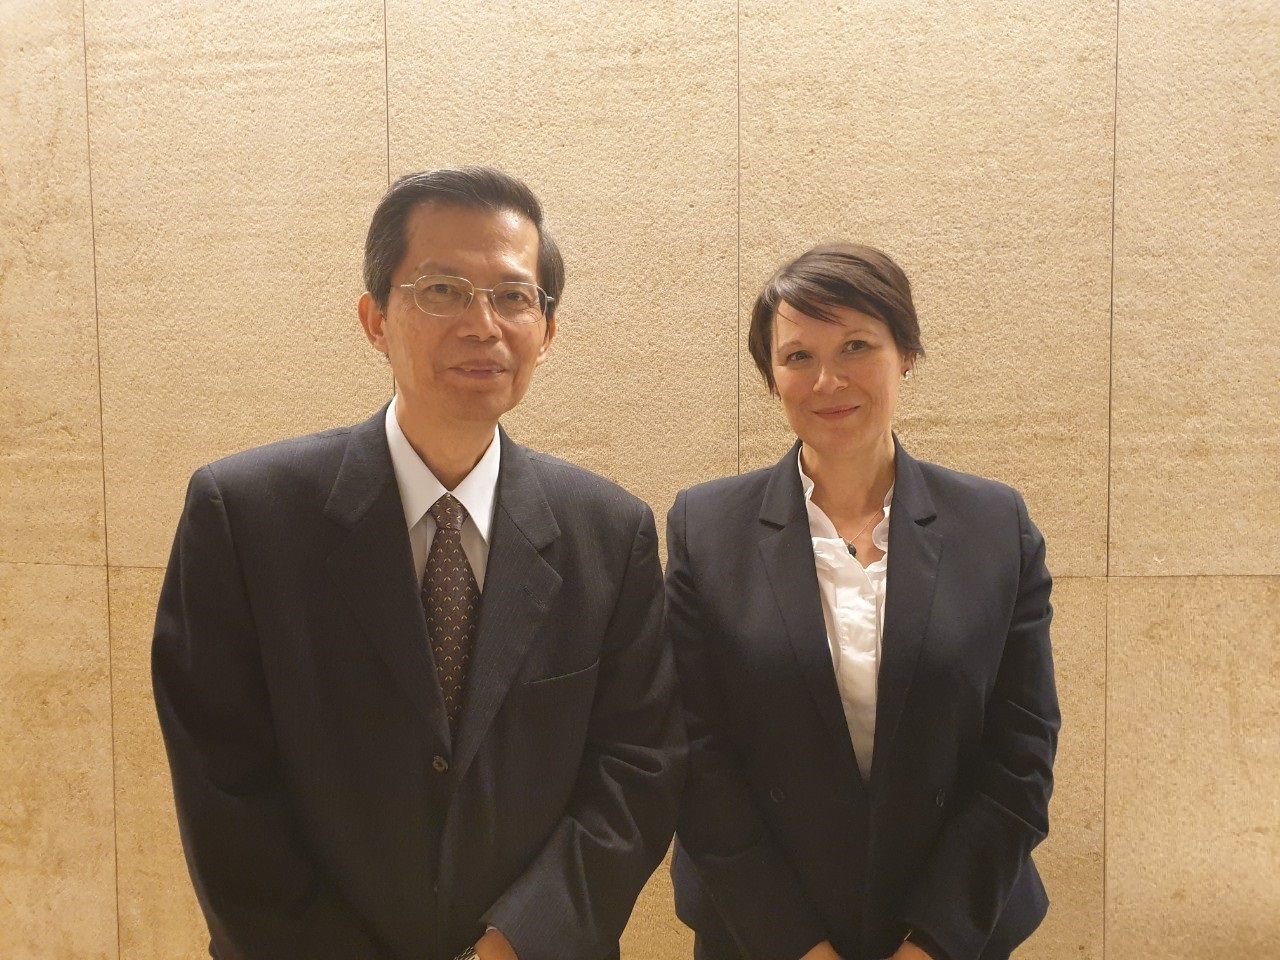 Photo of CDIC President Mr. William Su (left) and Senior Advisor of the FSI, Bank for International Settlements (host organization), Ms. Ruth Walters (right)